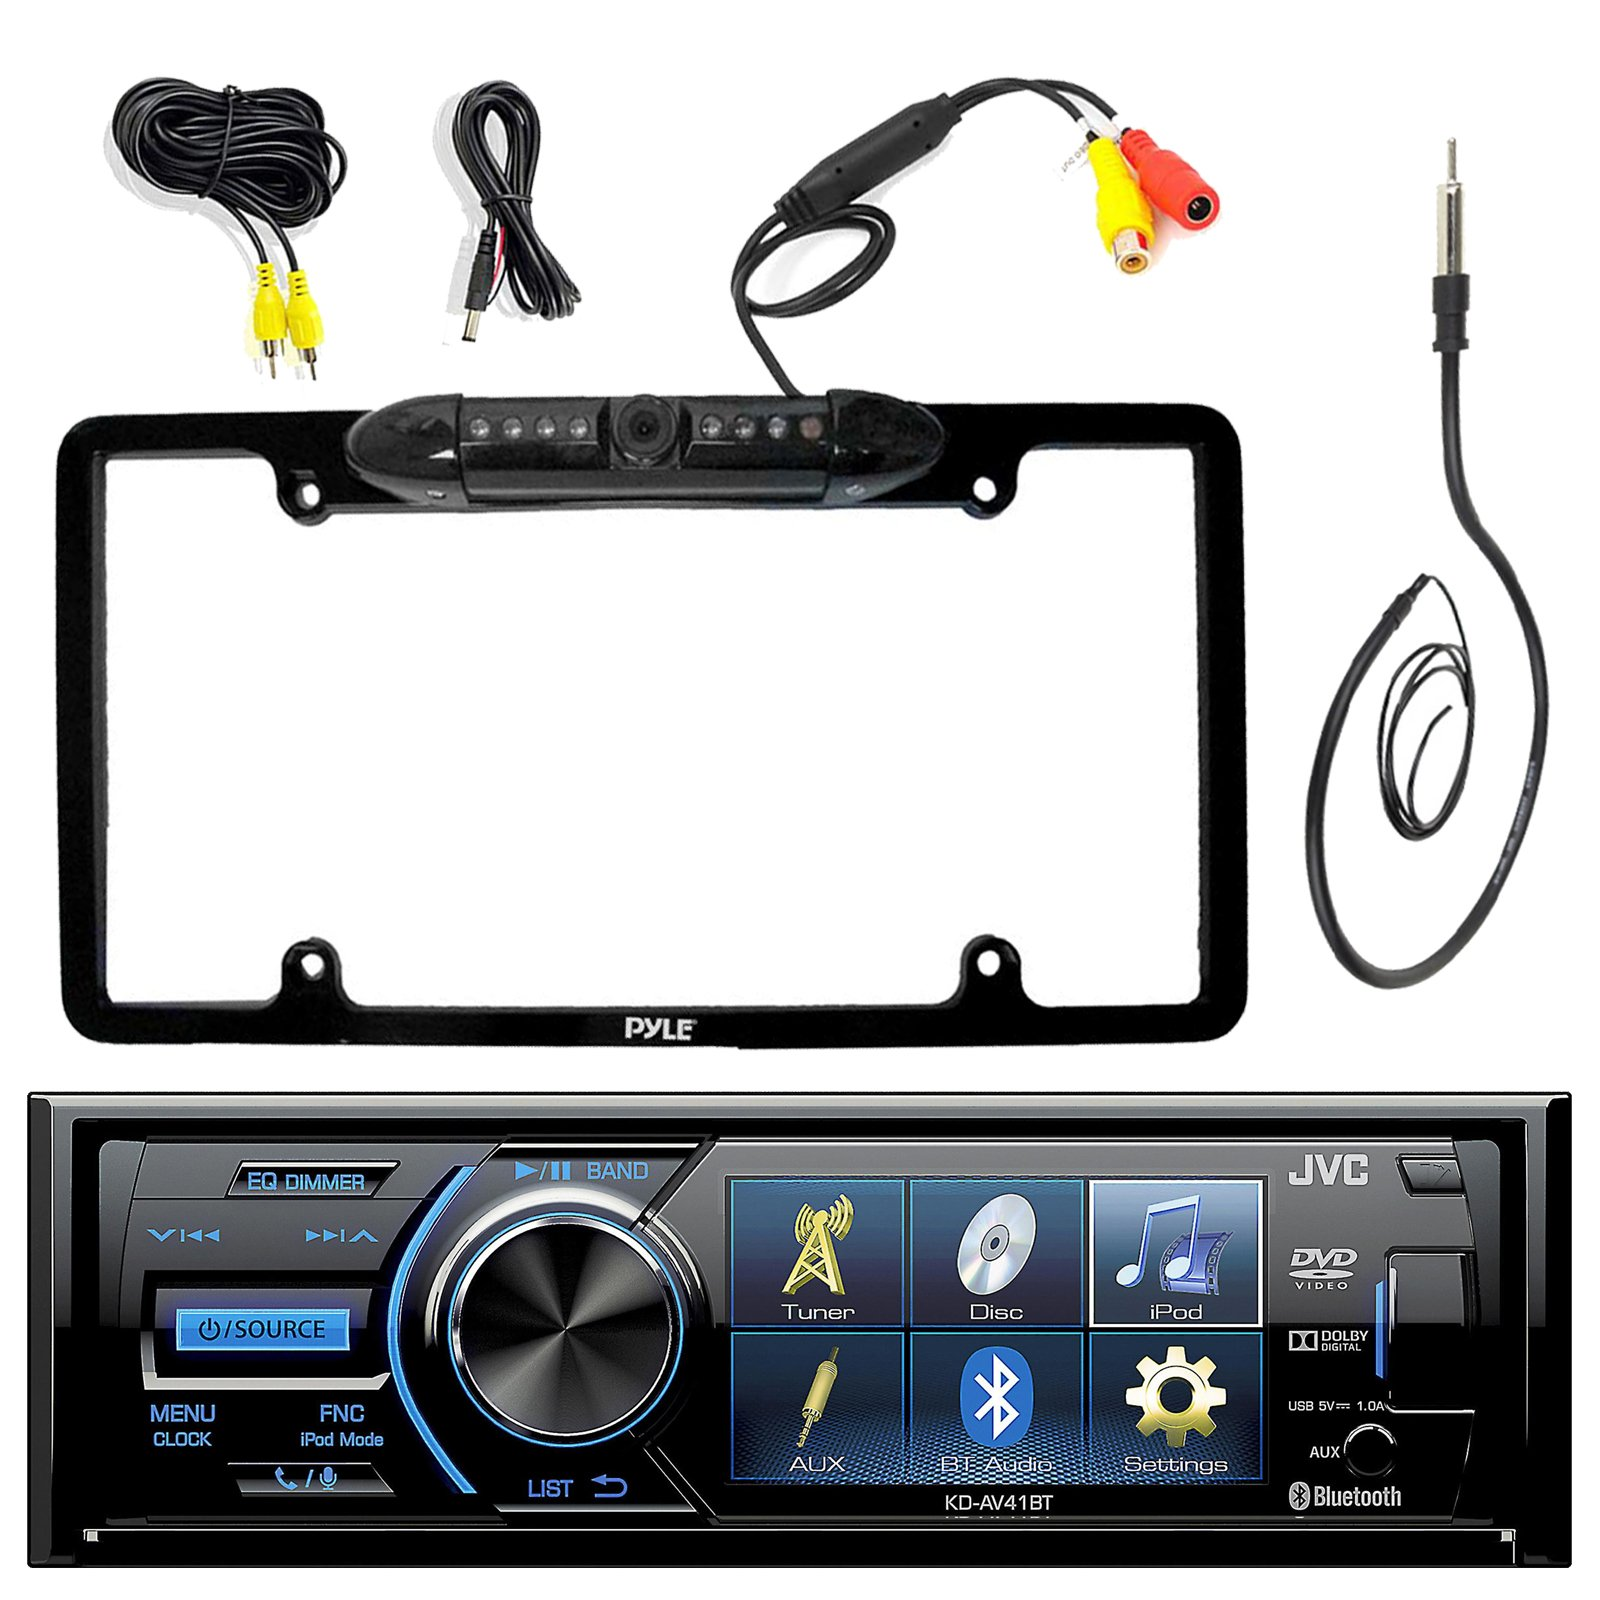 JVC KD-AV41BT 3'' Inch Display Car CD DVD USB Bluetooth Stereo Receiver Bundle Combo With Car License Plate Frame Rear View Colored Backup Parking Camera, Enrock 22'' AM/FM Radio Antenna by EnrockAudioBundle